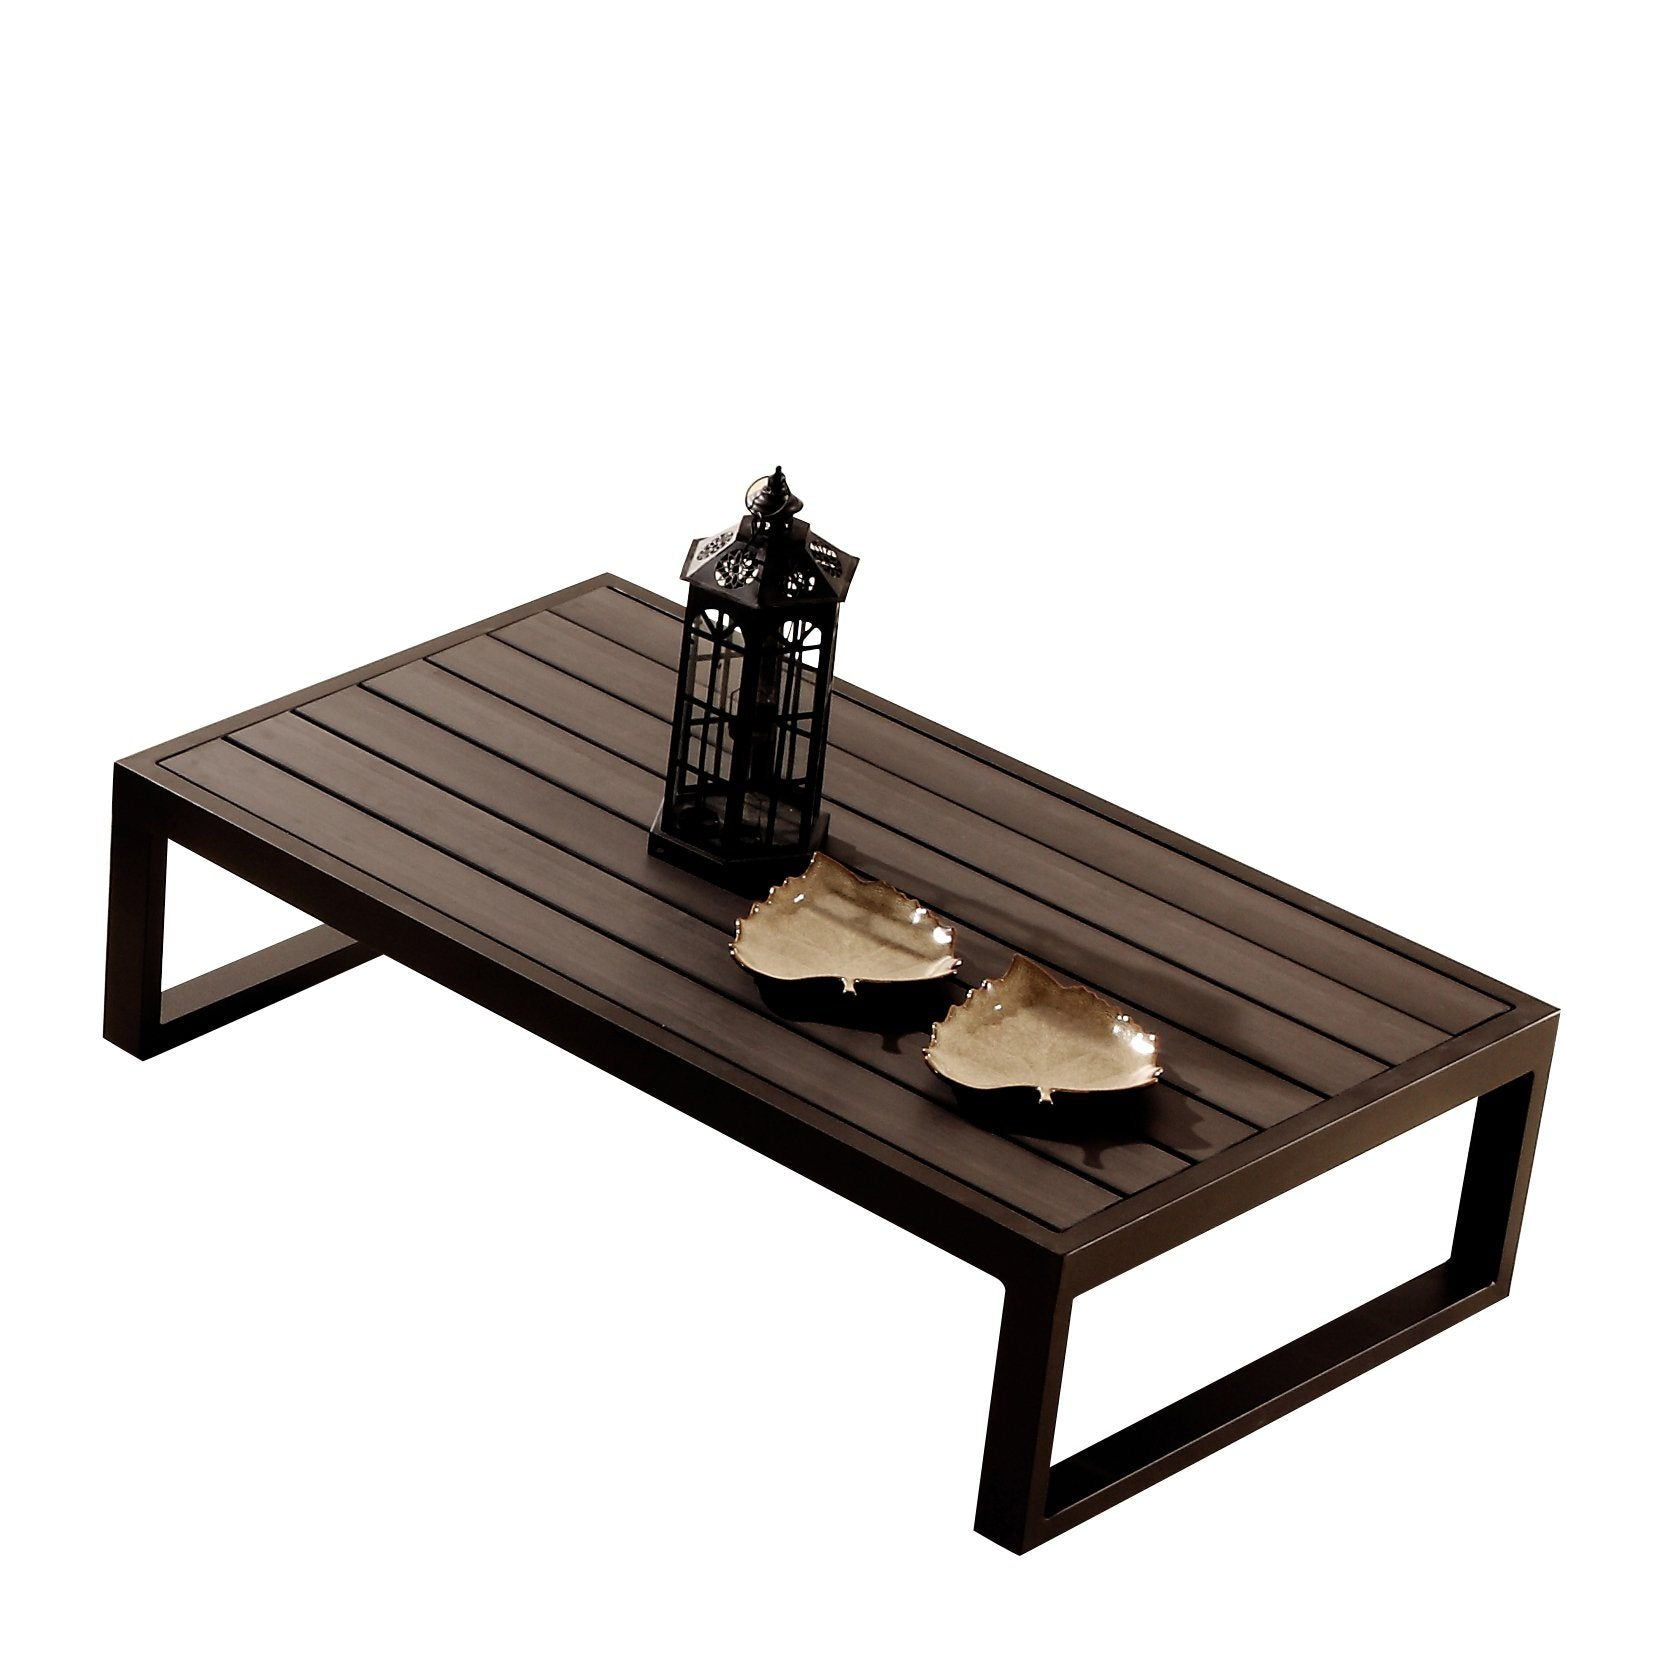 Contract Quality Outdoor Furniture Coffee Table Polywood - Polywood coffee table